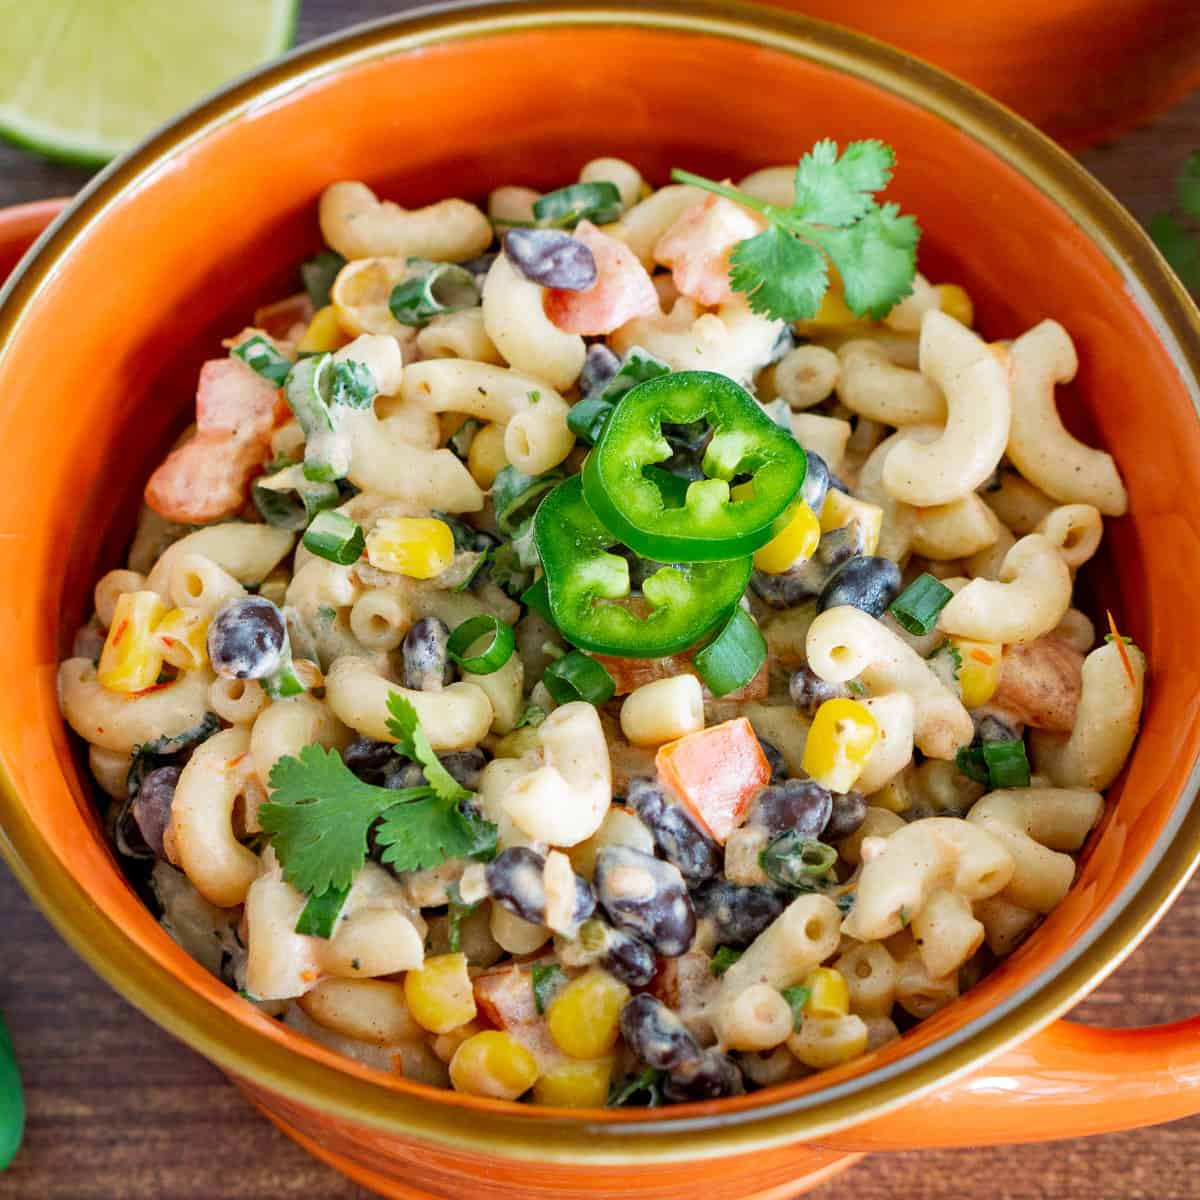 vegan mexican macaroni salad in a bowl garnished with jalapeno